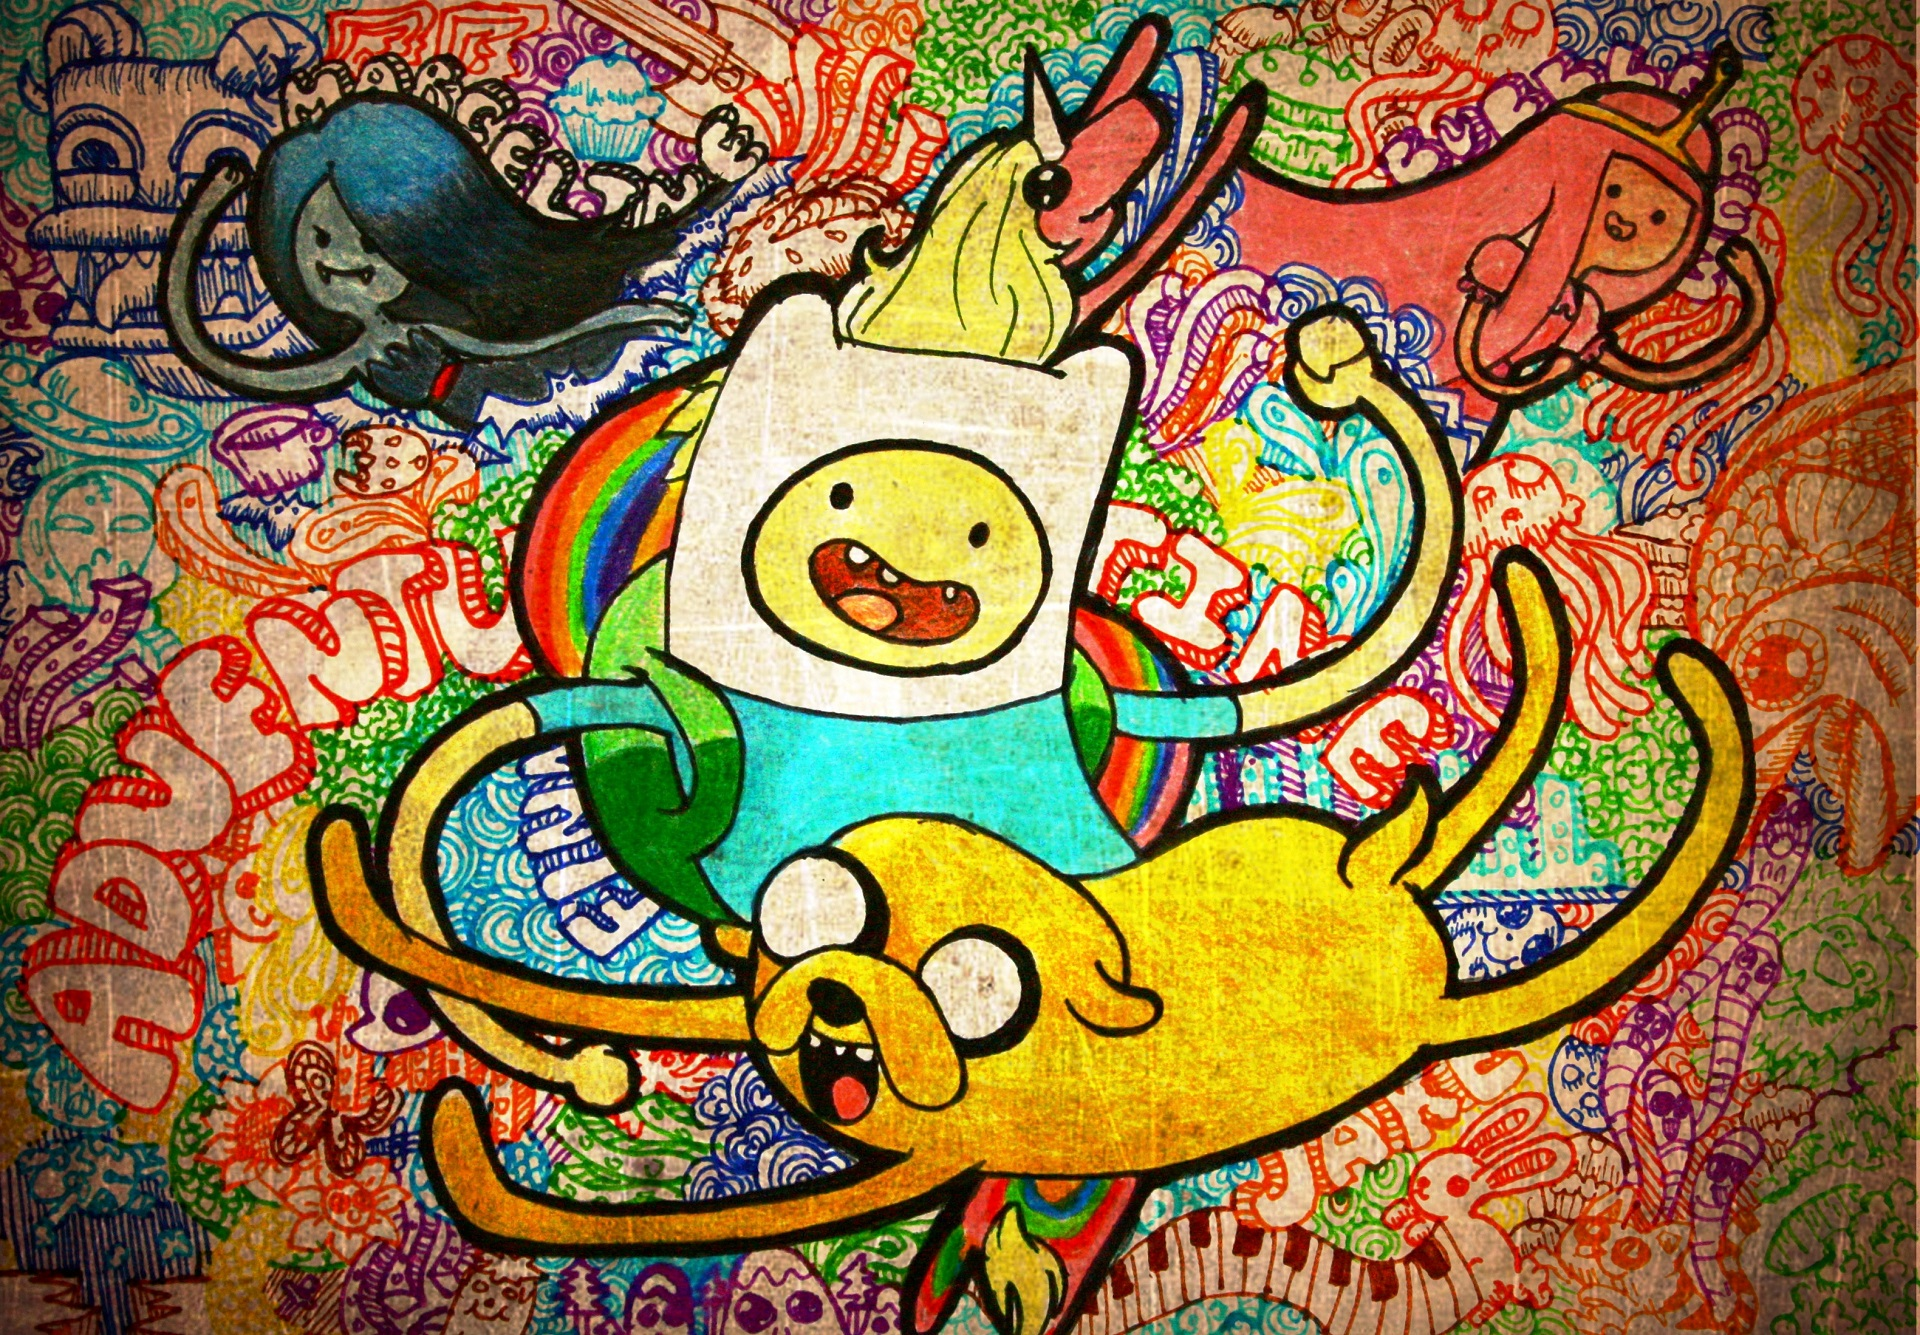 Image - Finn And Jake Drawing Wallpaper.jpg